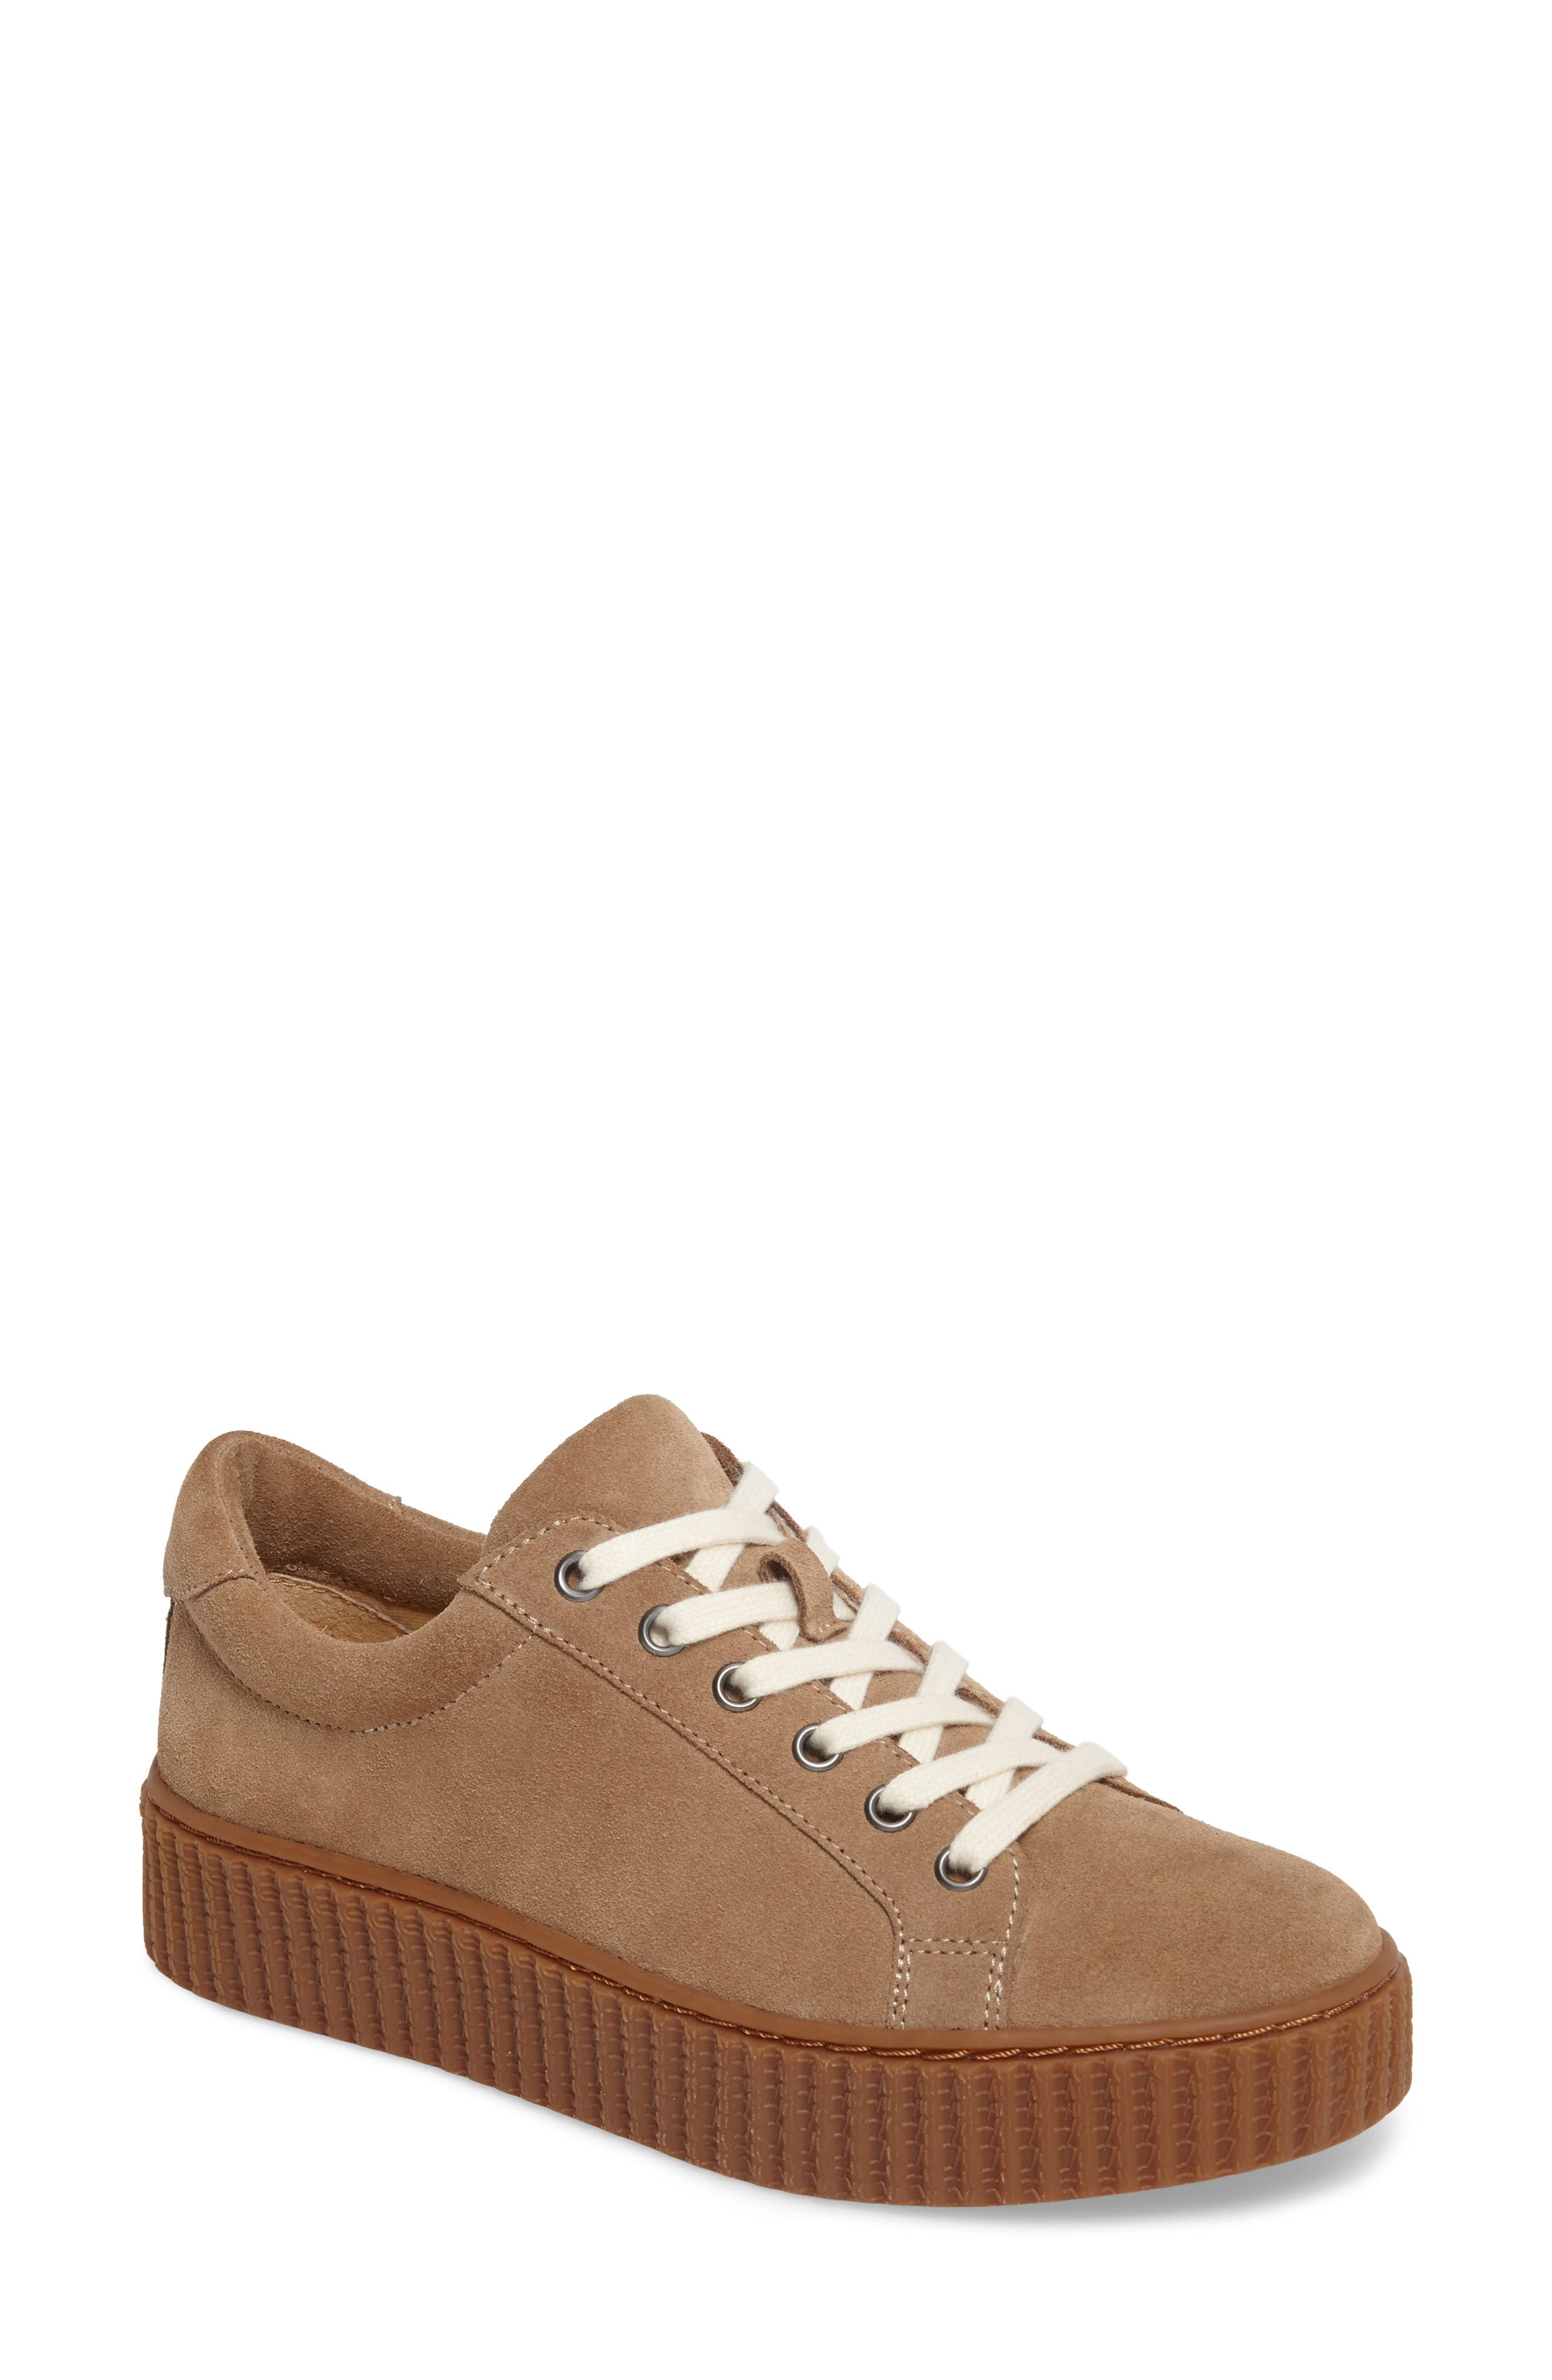 Ruth Platform Sneaker,                         Main,                         color, Light Taupe Suede